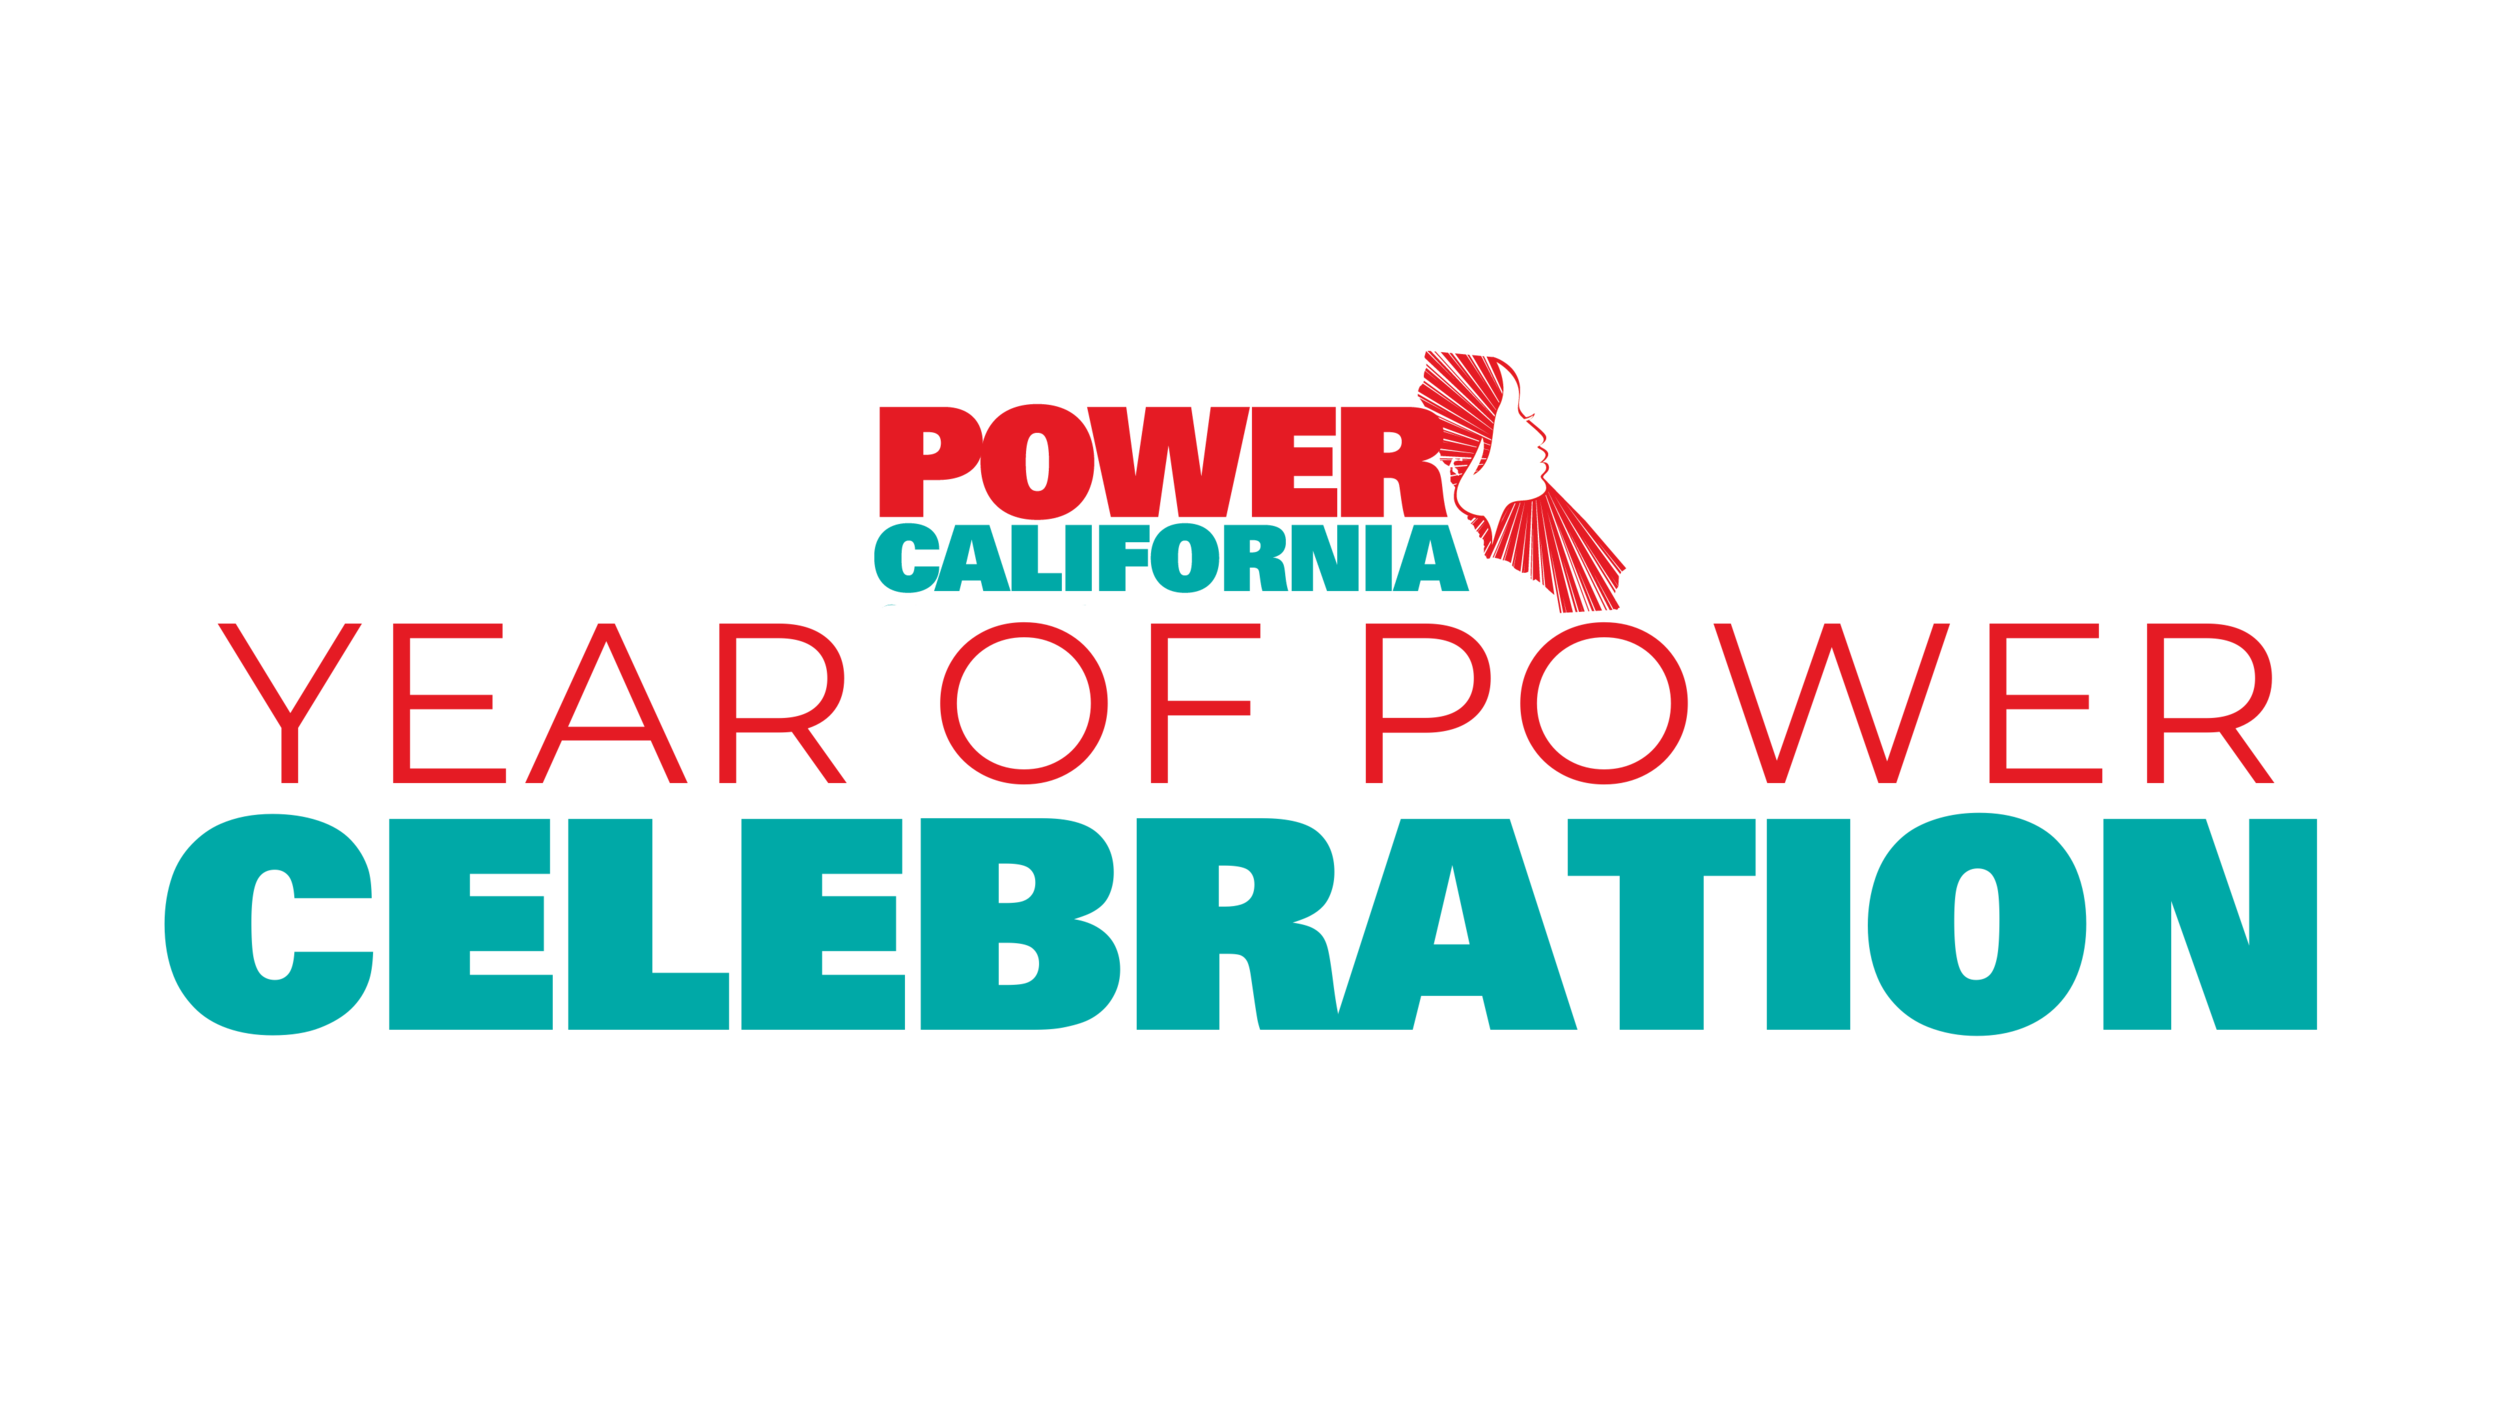 YearOfPower_LogoTurq&Red.png